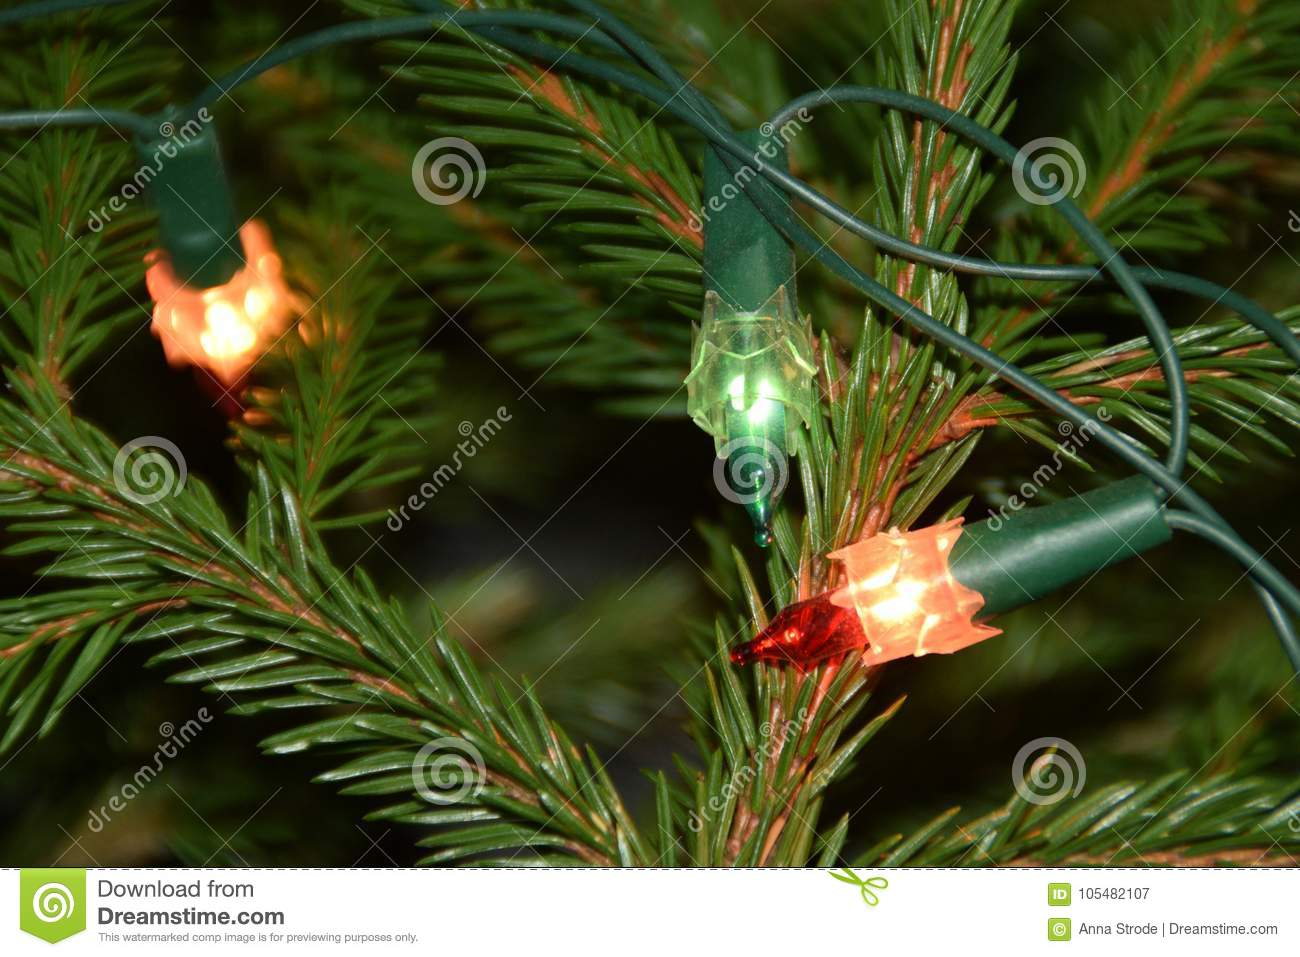 Christmas Tree Lights On Fir Tree Branches. Stock Image - Image of ...